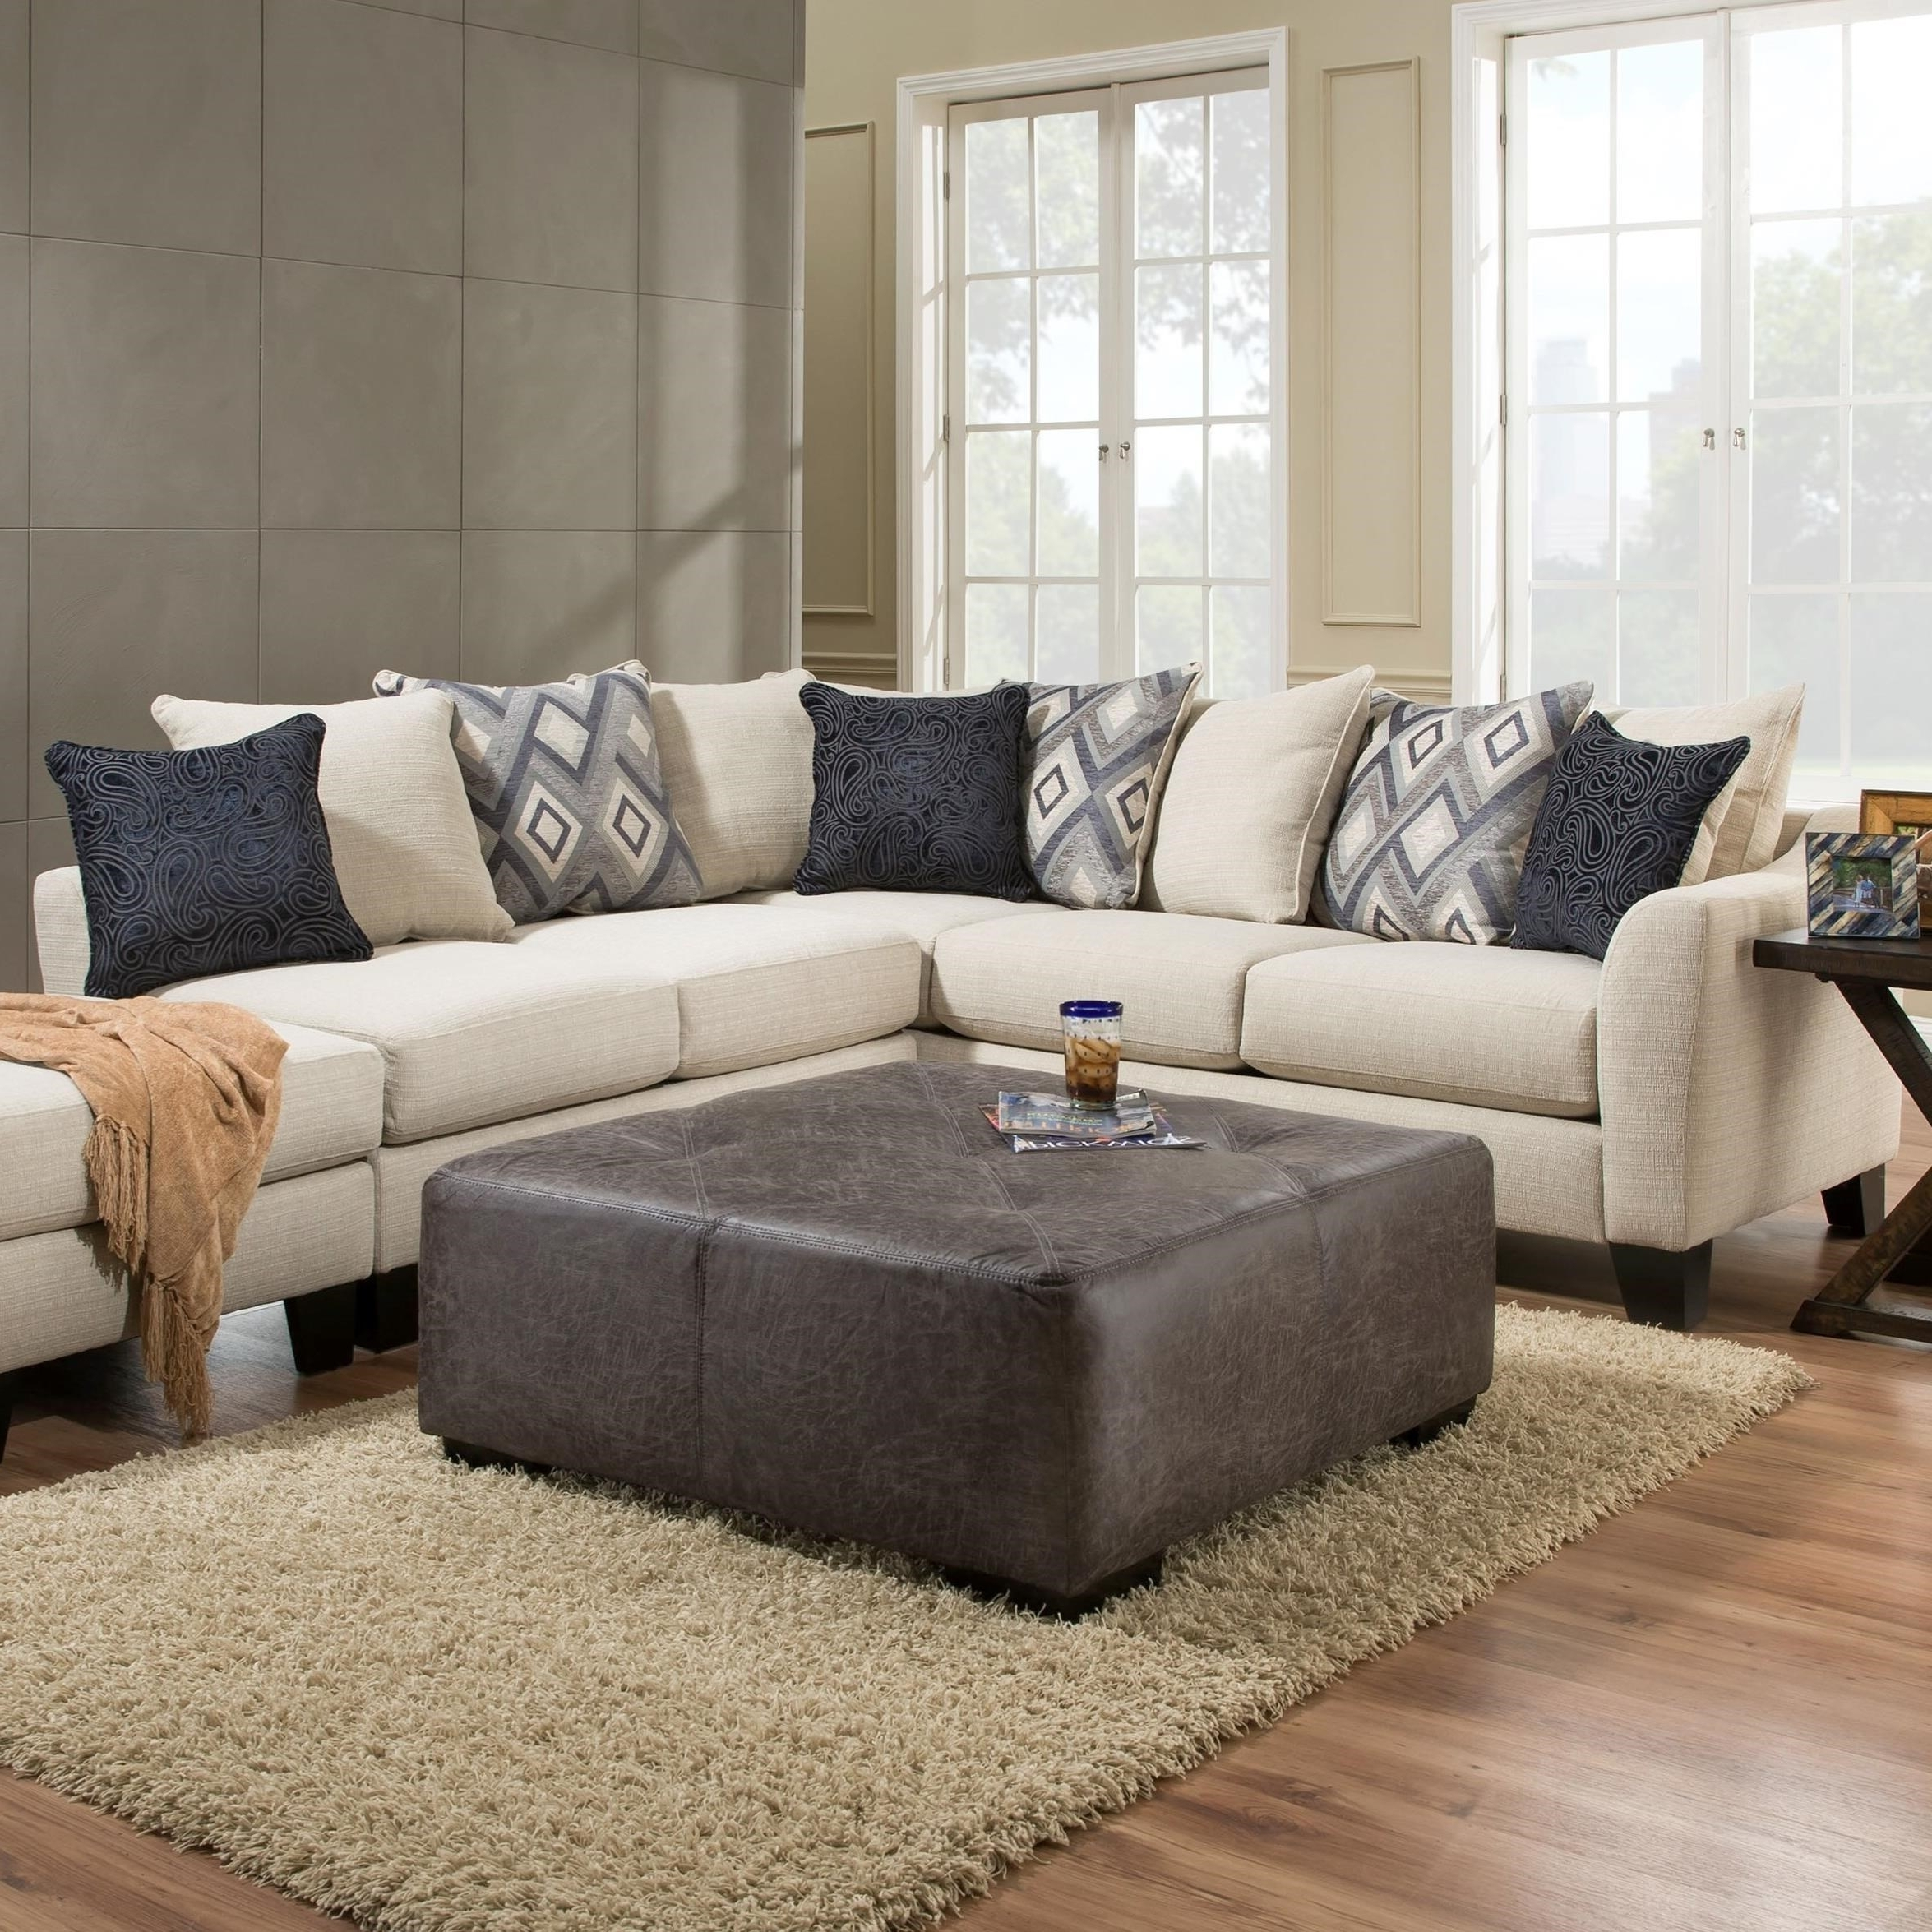 Current Albany R759 2 Piece Sectional Sofa In Dynasty Cream Fabric Throughout Hattiesburg Ms Sectional Sofas (View 5 of 20)